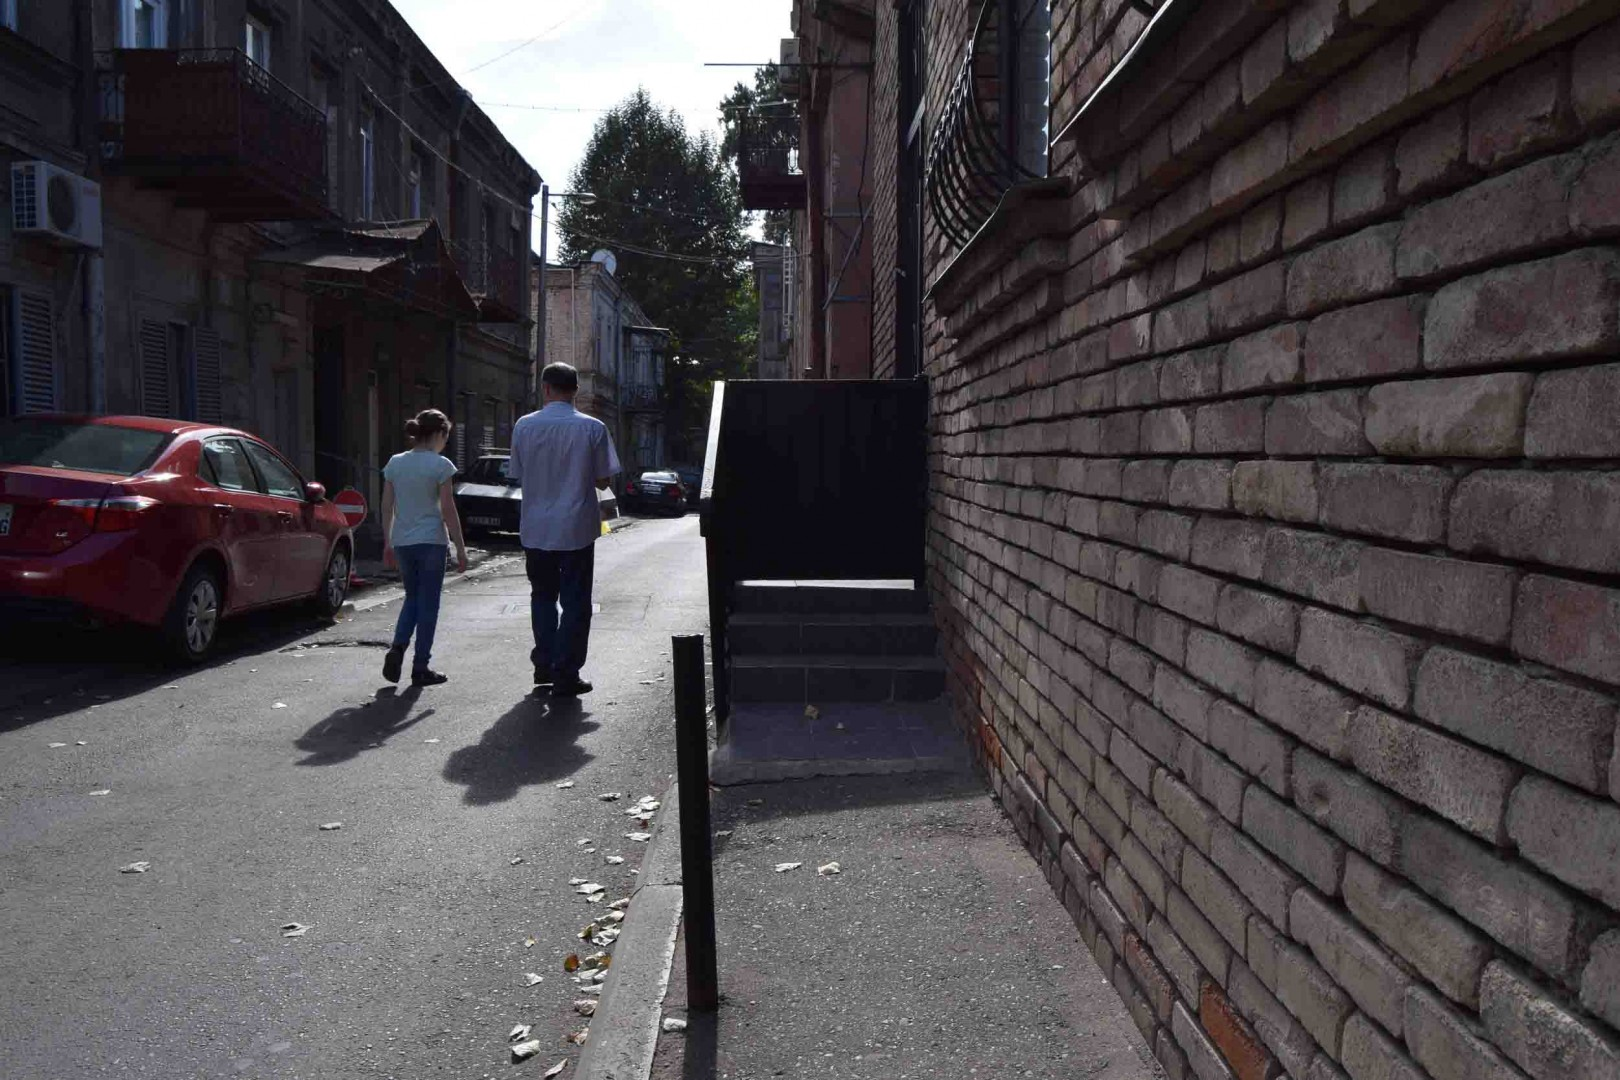 Again Gia Tetelashvili Street. The photo shows the stairs to the sidewalk, so pedestrians have to walk on the road.